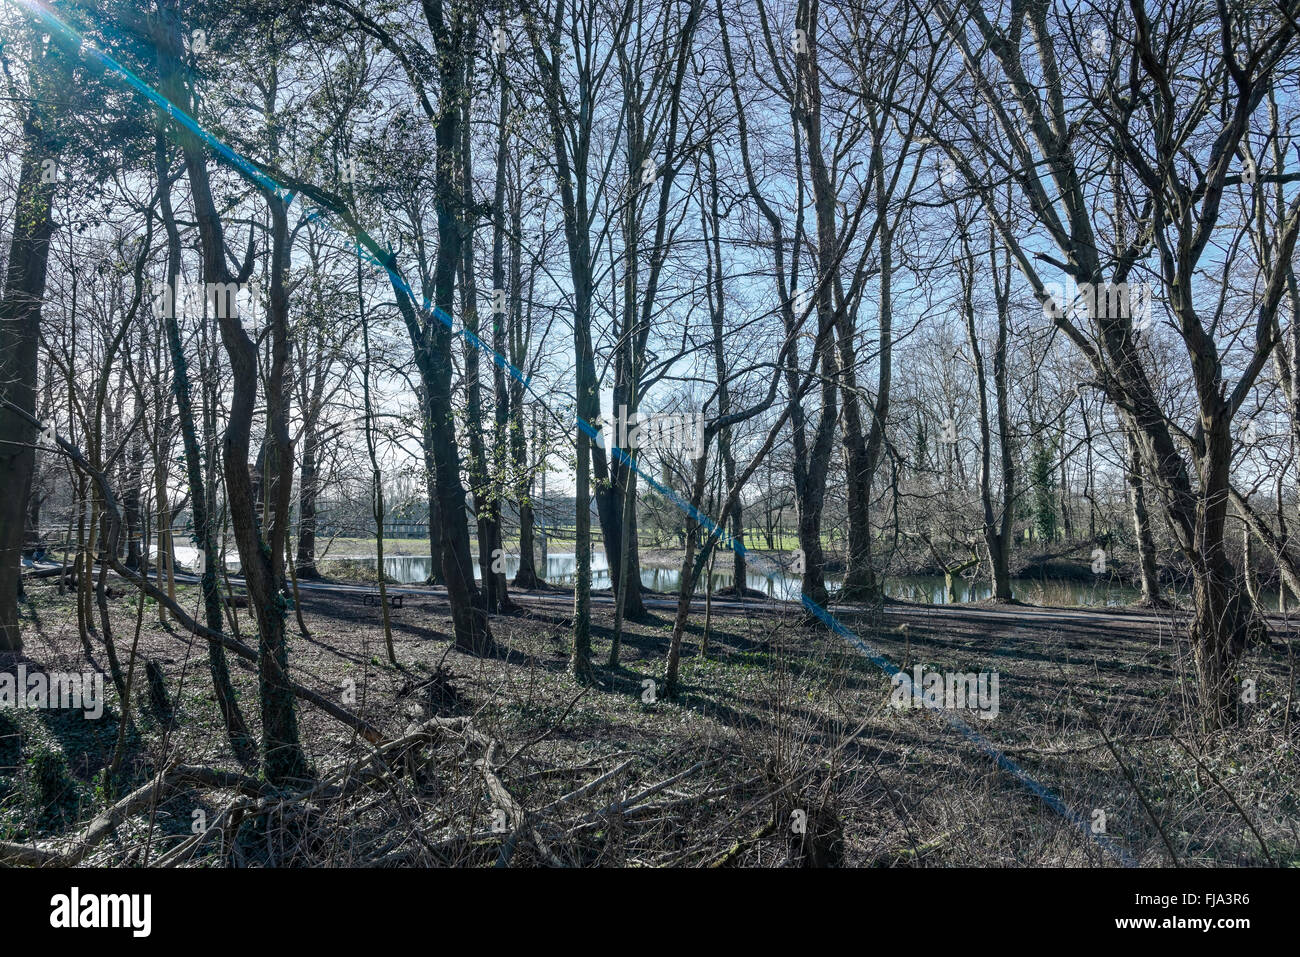 Sun flare through the trees, looking towards the weir bridge, Bute Park, Cardiff. - Stock Image